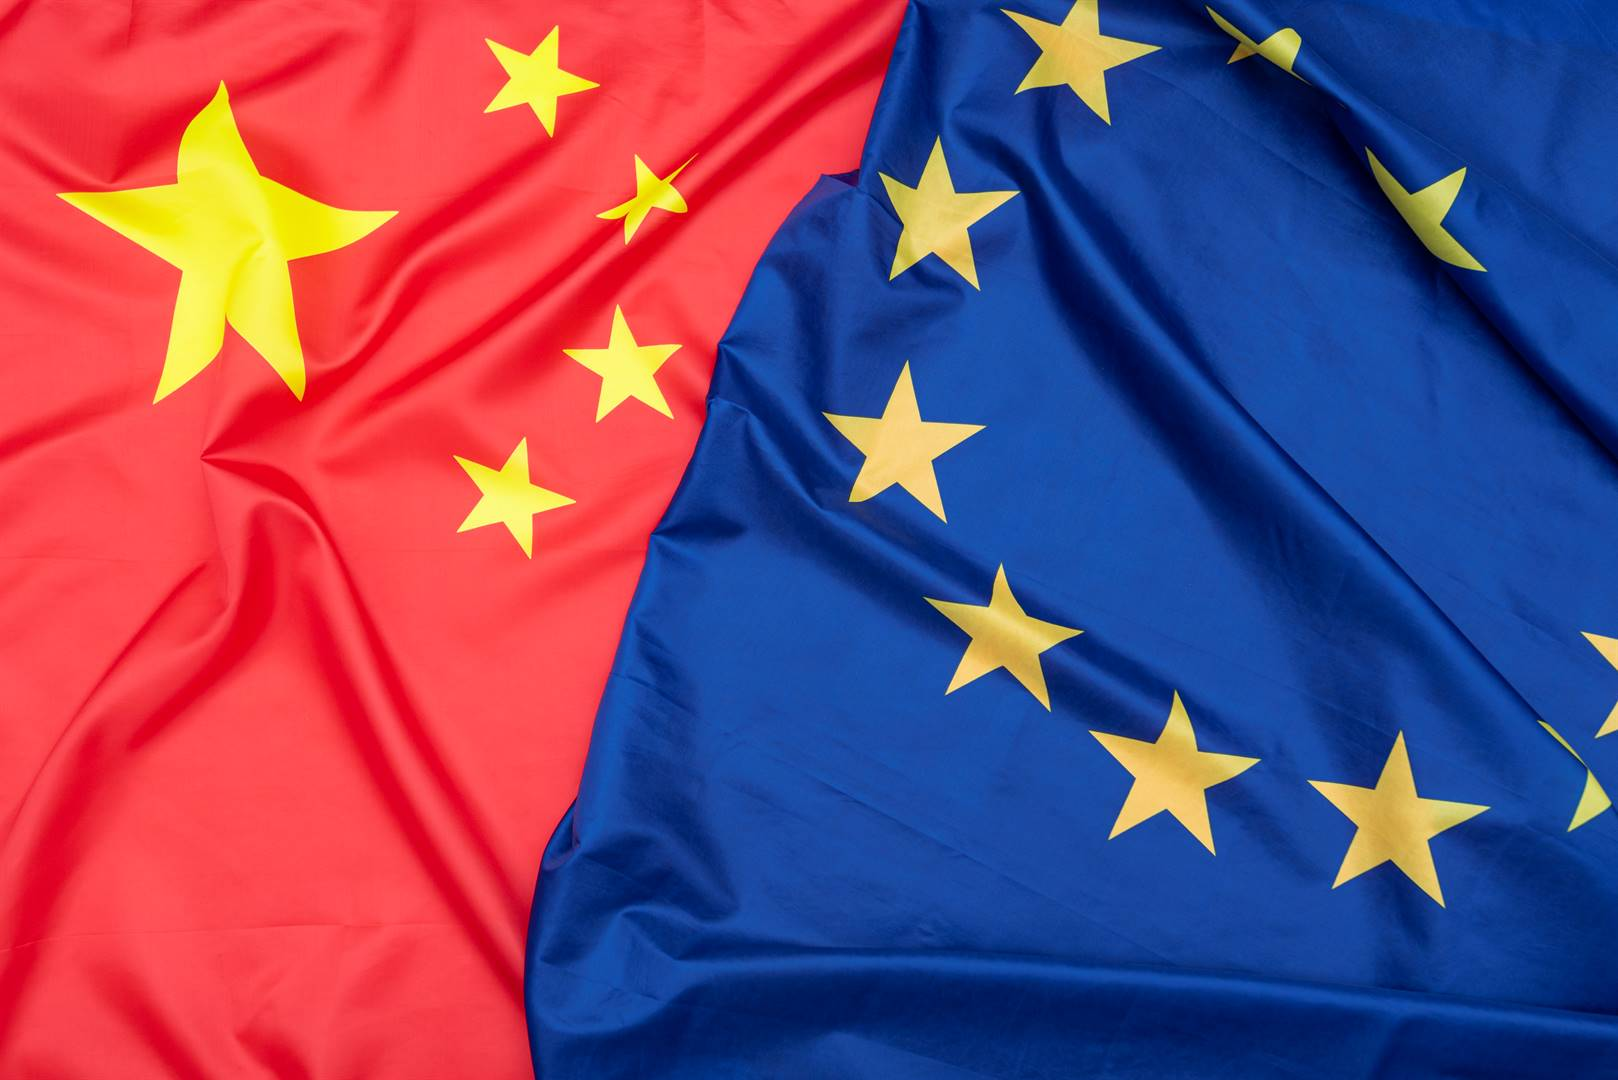 Europe strikes major investment deal with China despite USA concerns